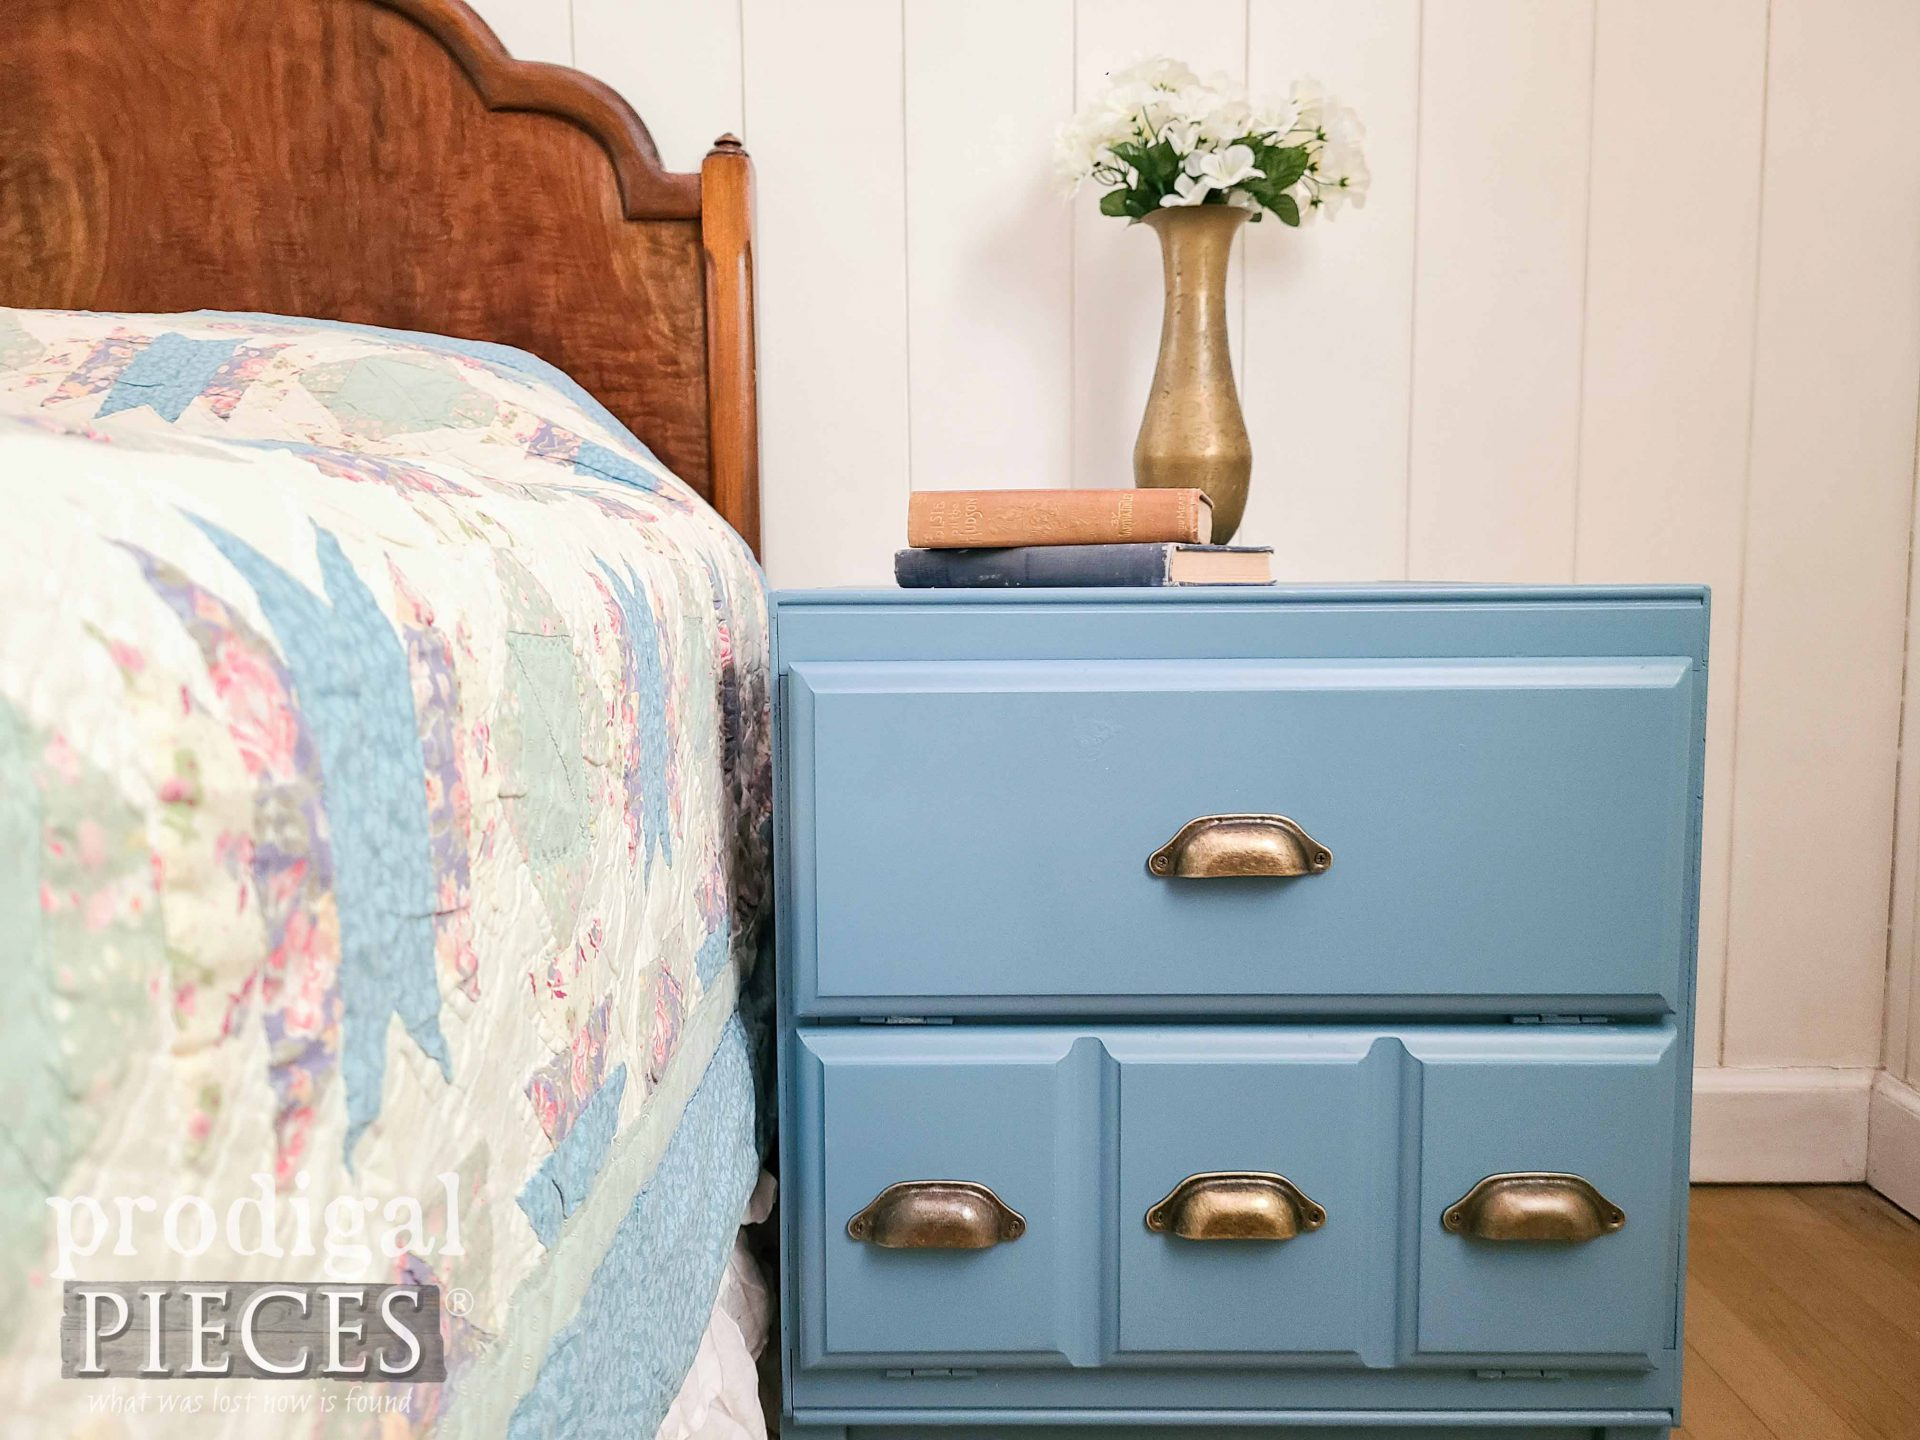 Modern Farmhouse Style Blue Cabinet Side Table by Larissa of Prodigal Pieces   prodigalpieces.com #prodigalpieces #modernfarmhouse #farmhouse #diy